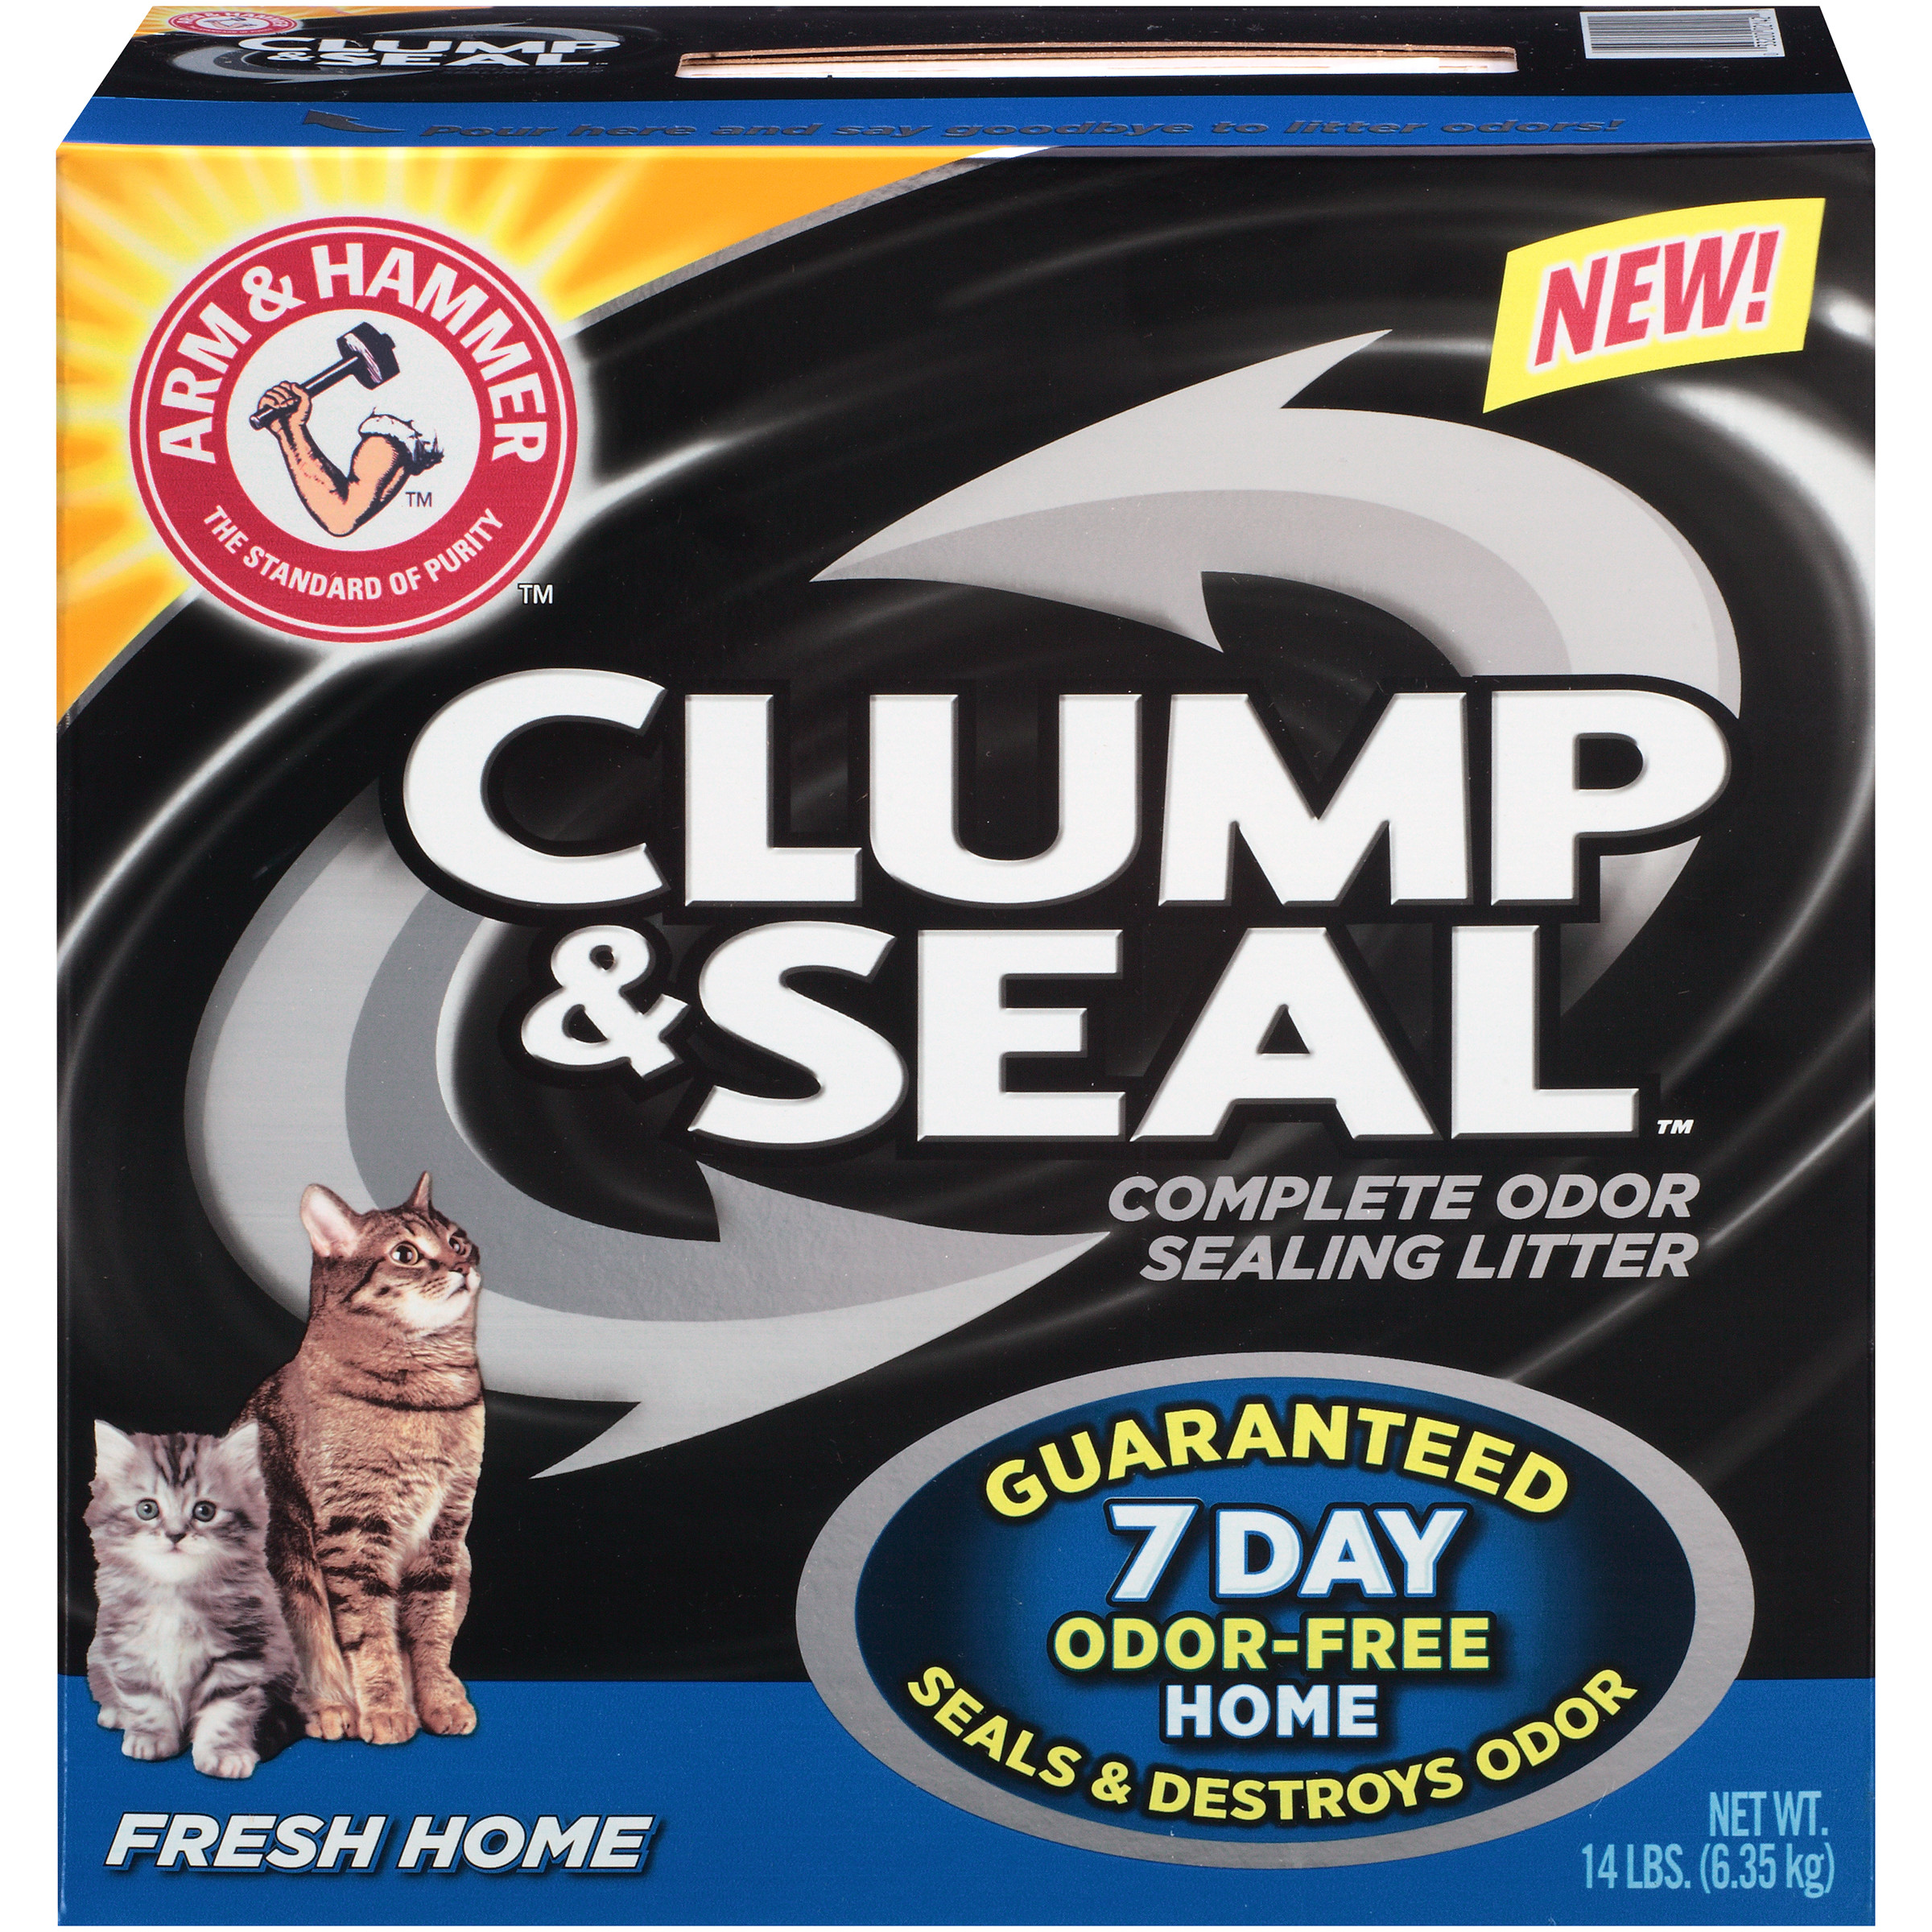 Arm & Hammer Clump & Seal Litter, Fresh Home Scent 14lb